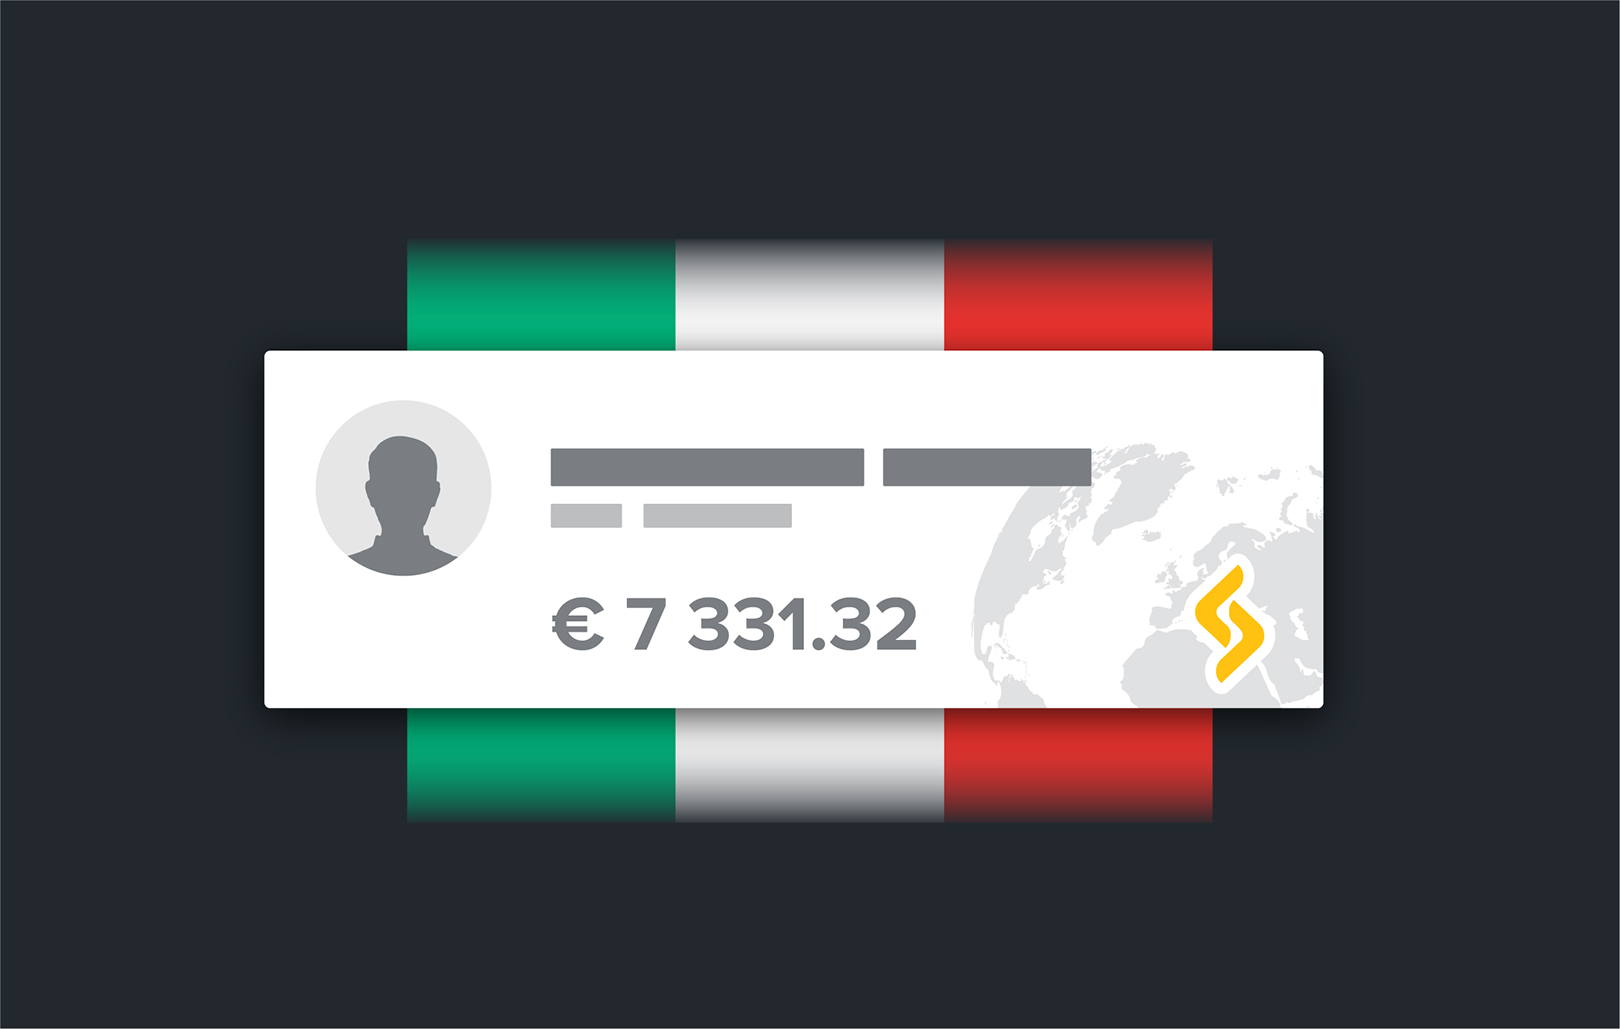 How to Open a Bank Account Online in Italy